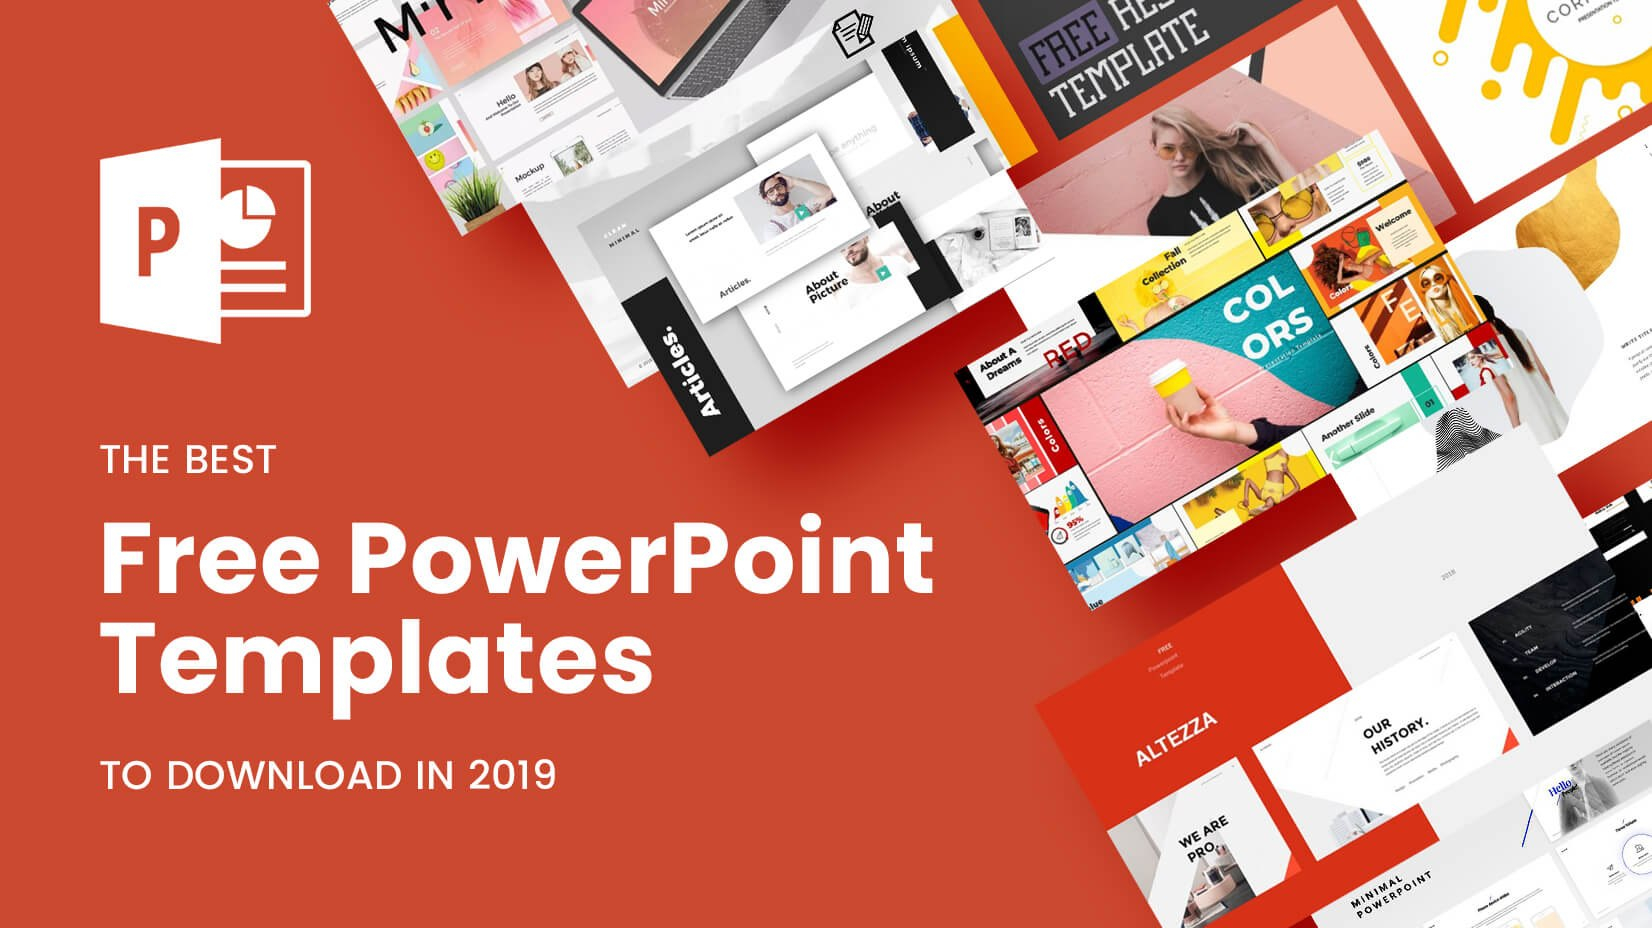 The Best Free Powerpoint Templates To Download In   Graphicmama Throughout Fun Powerpoint Templates Free Download